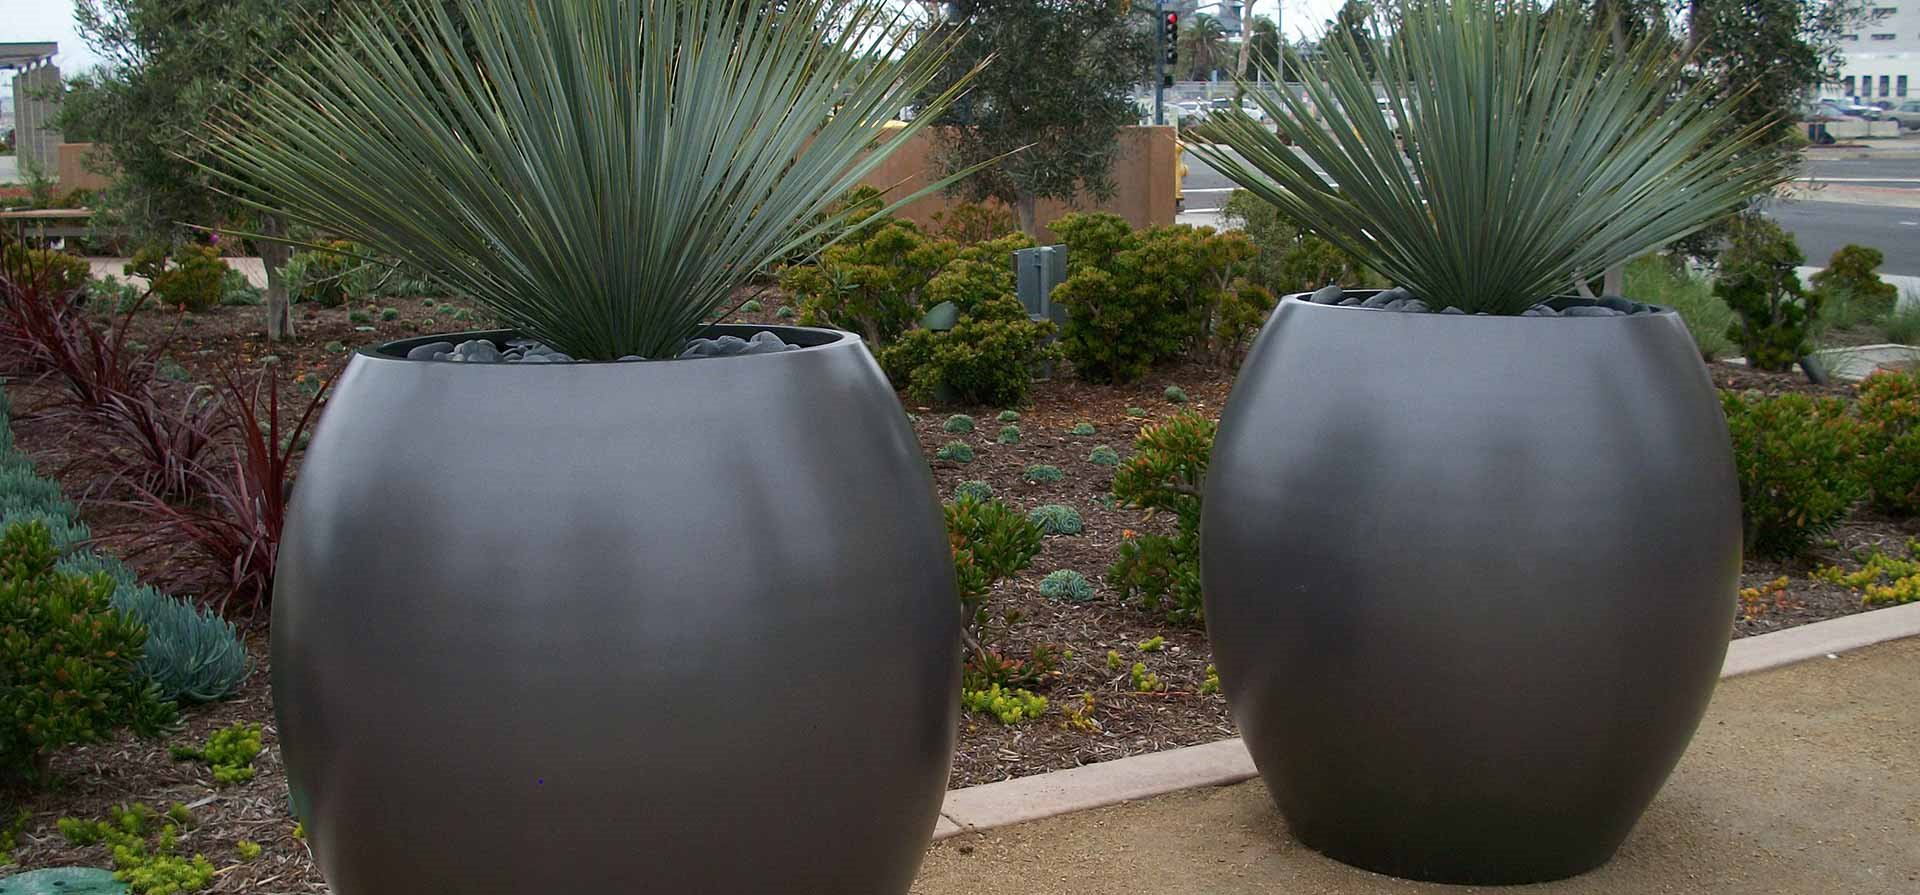 Aquarian Planters - Round Puddle